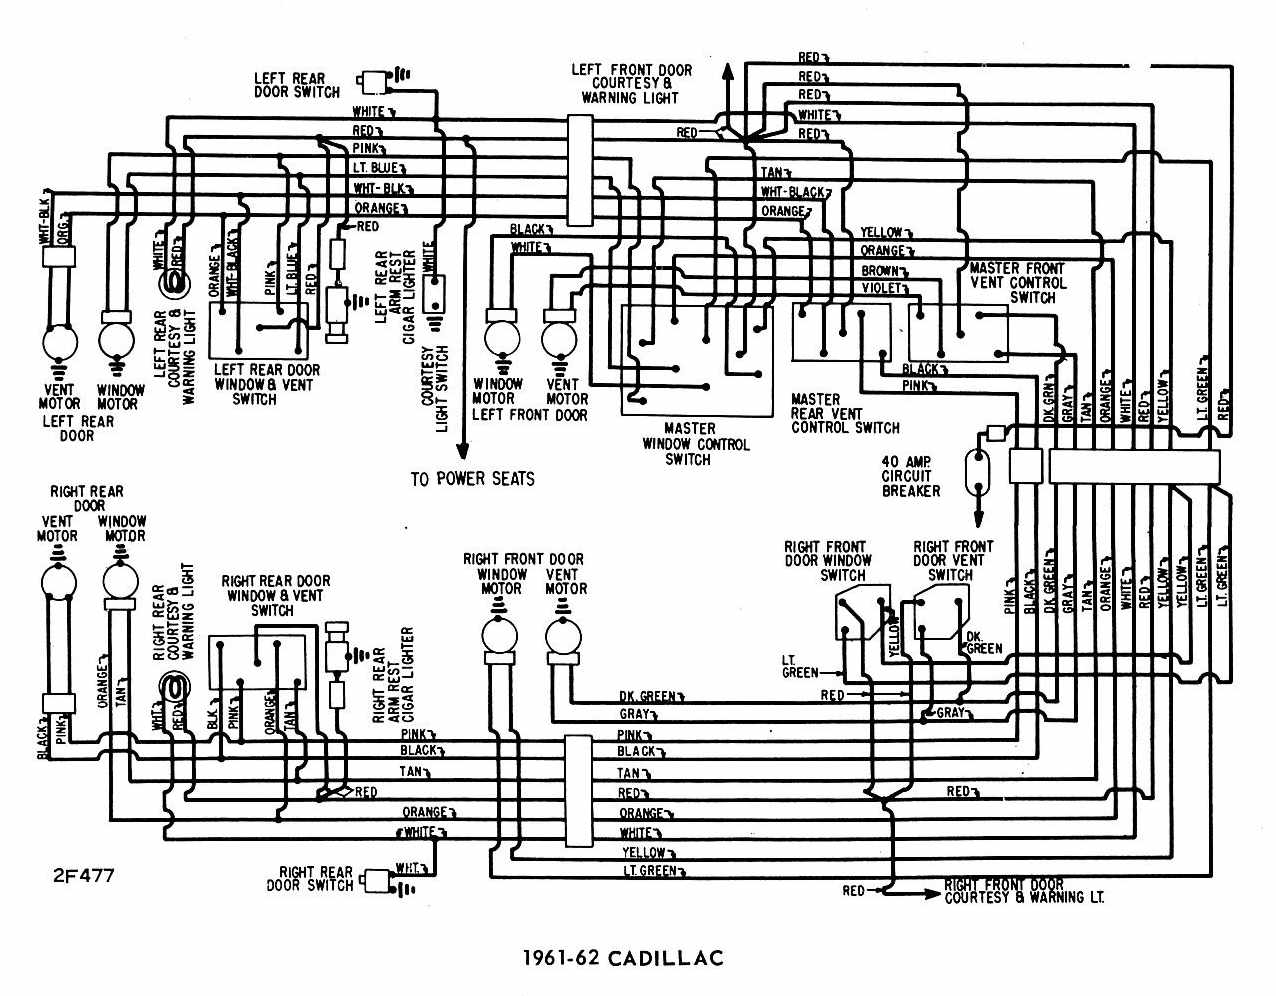 2003 Cadillac Cts Fuel Injector Wiring Diagram from www.automotive-manuals.net